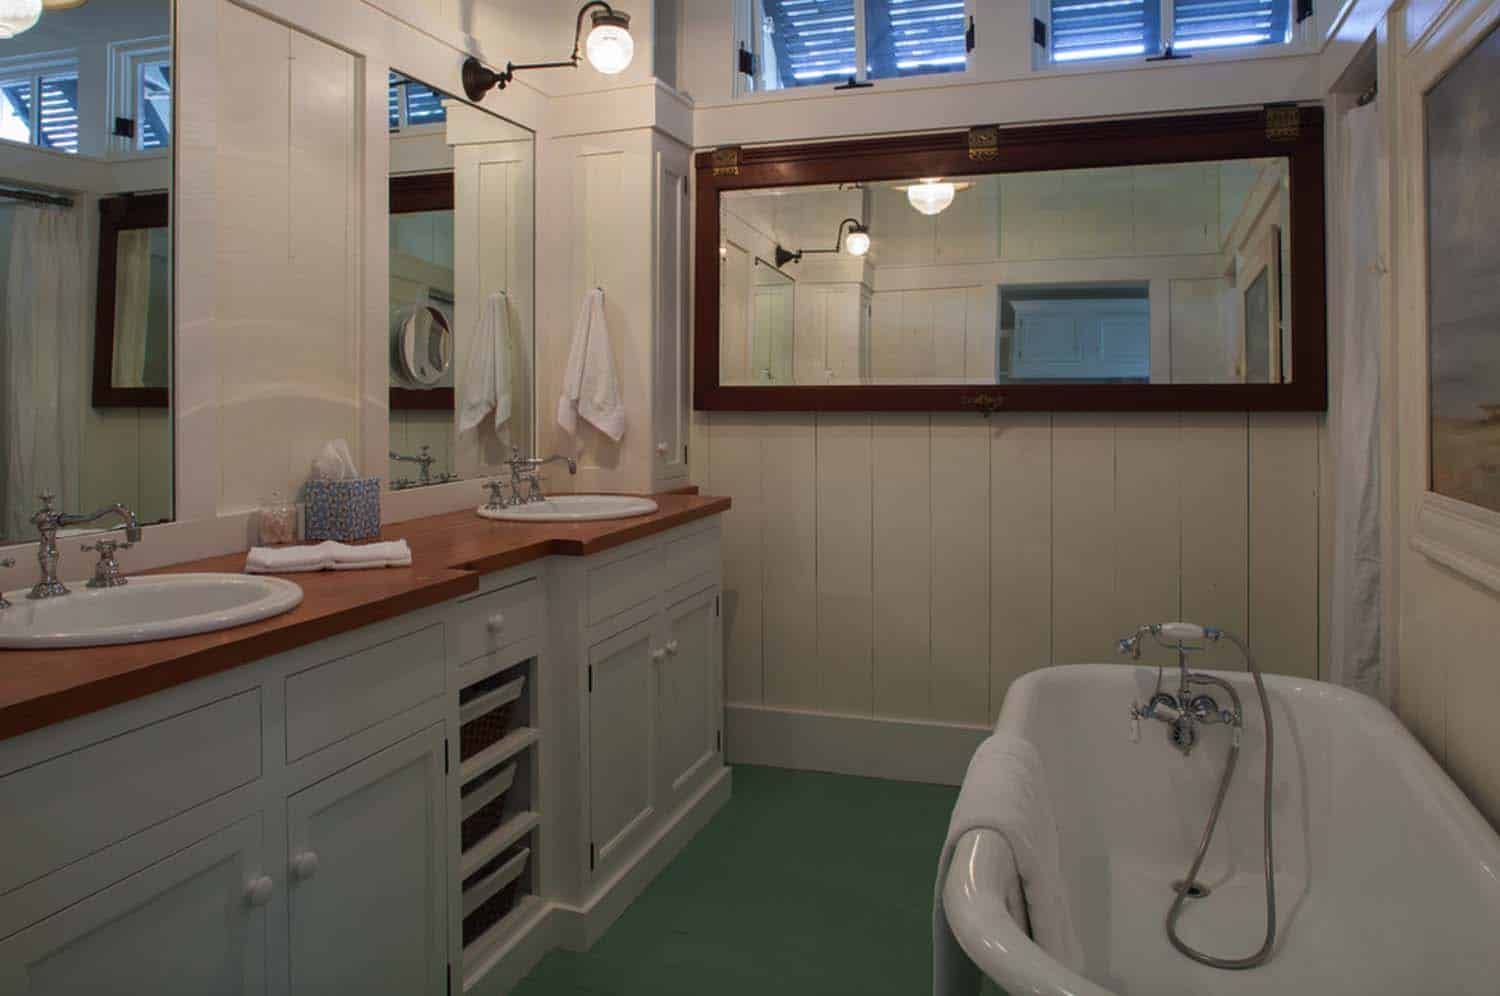 Fish Camp Beach Cottage-Historical Concepts-13-1 Kindesign